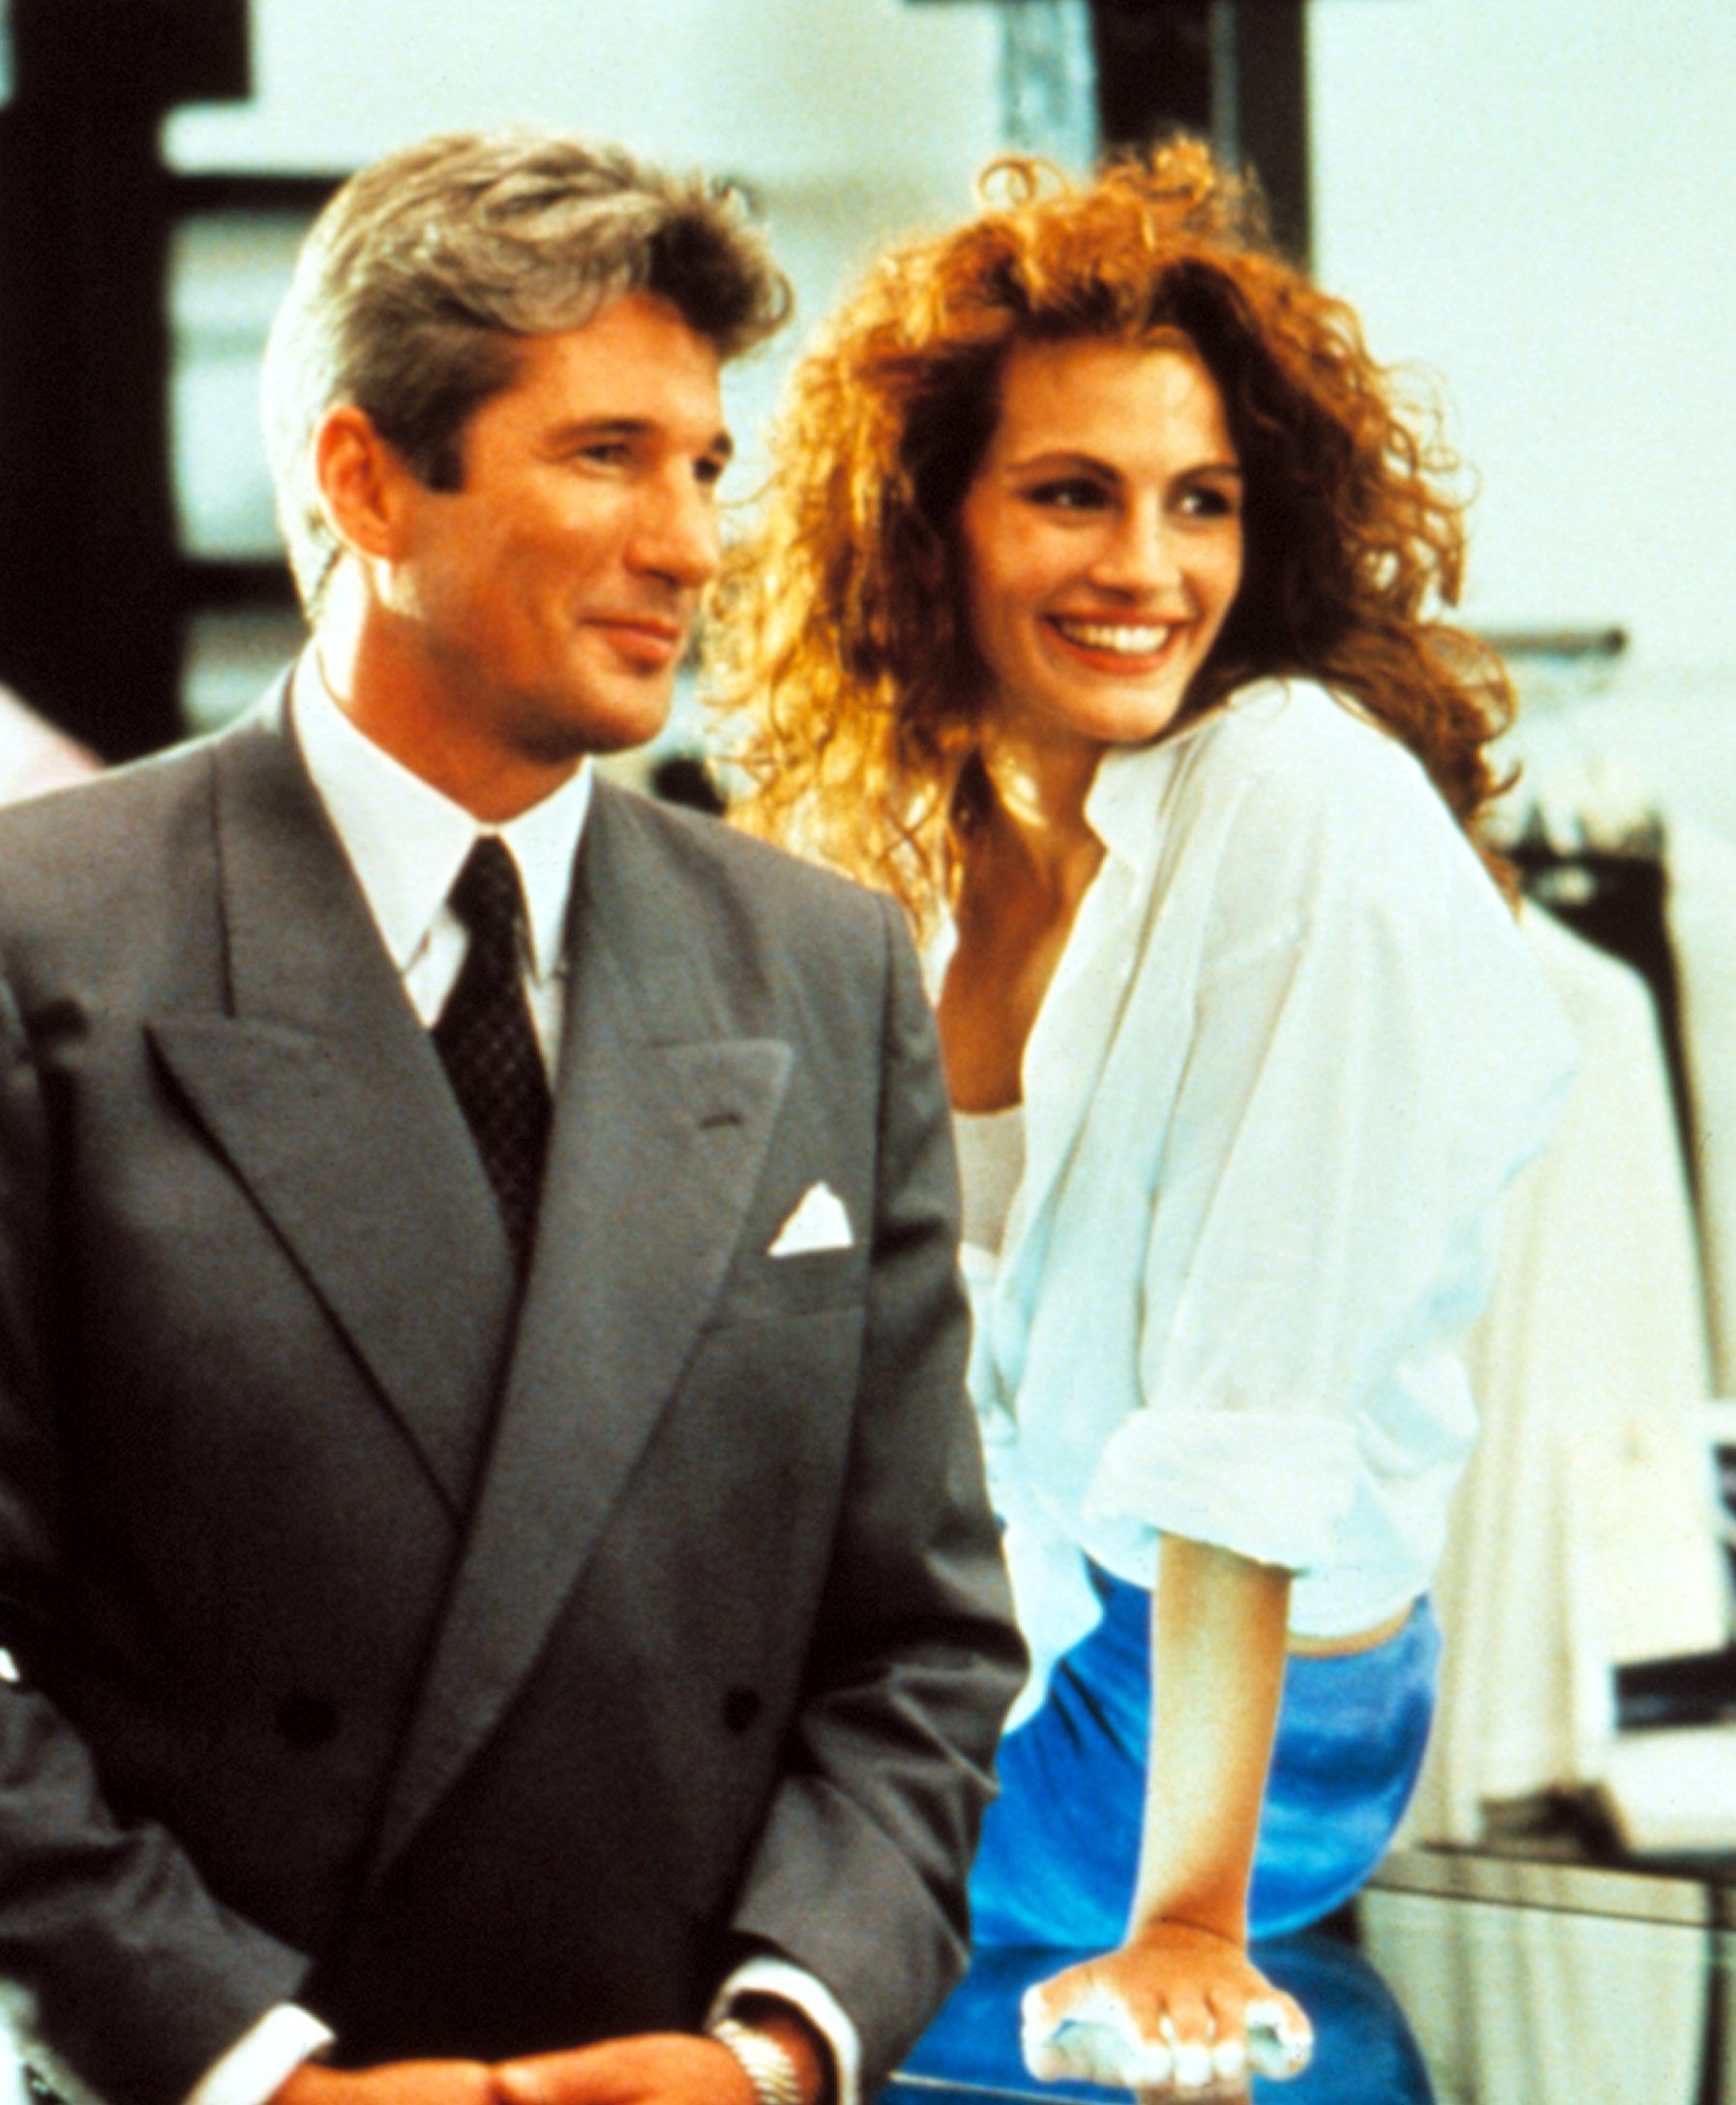 'Pretty Woman' Original Ending Had Julie Roberts' Character Dying Of An Overdose - Fame10